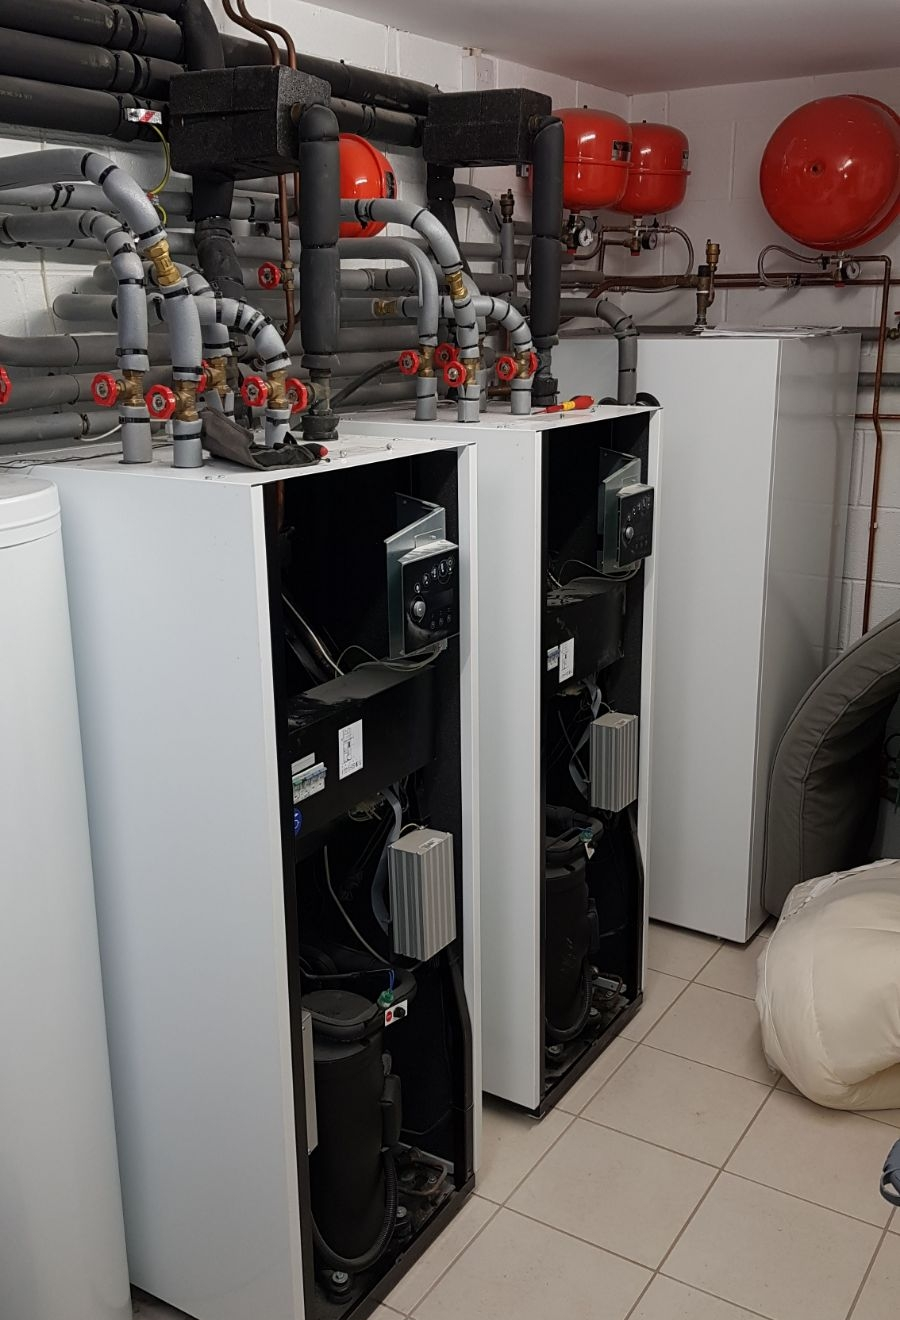 IVT Ground Source Heat Pump Service